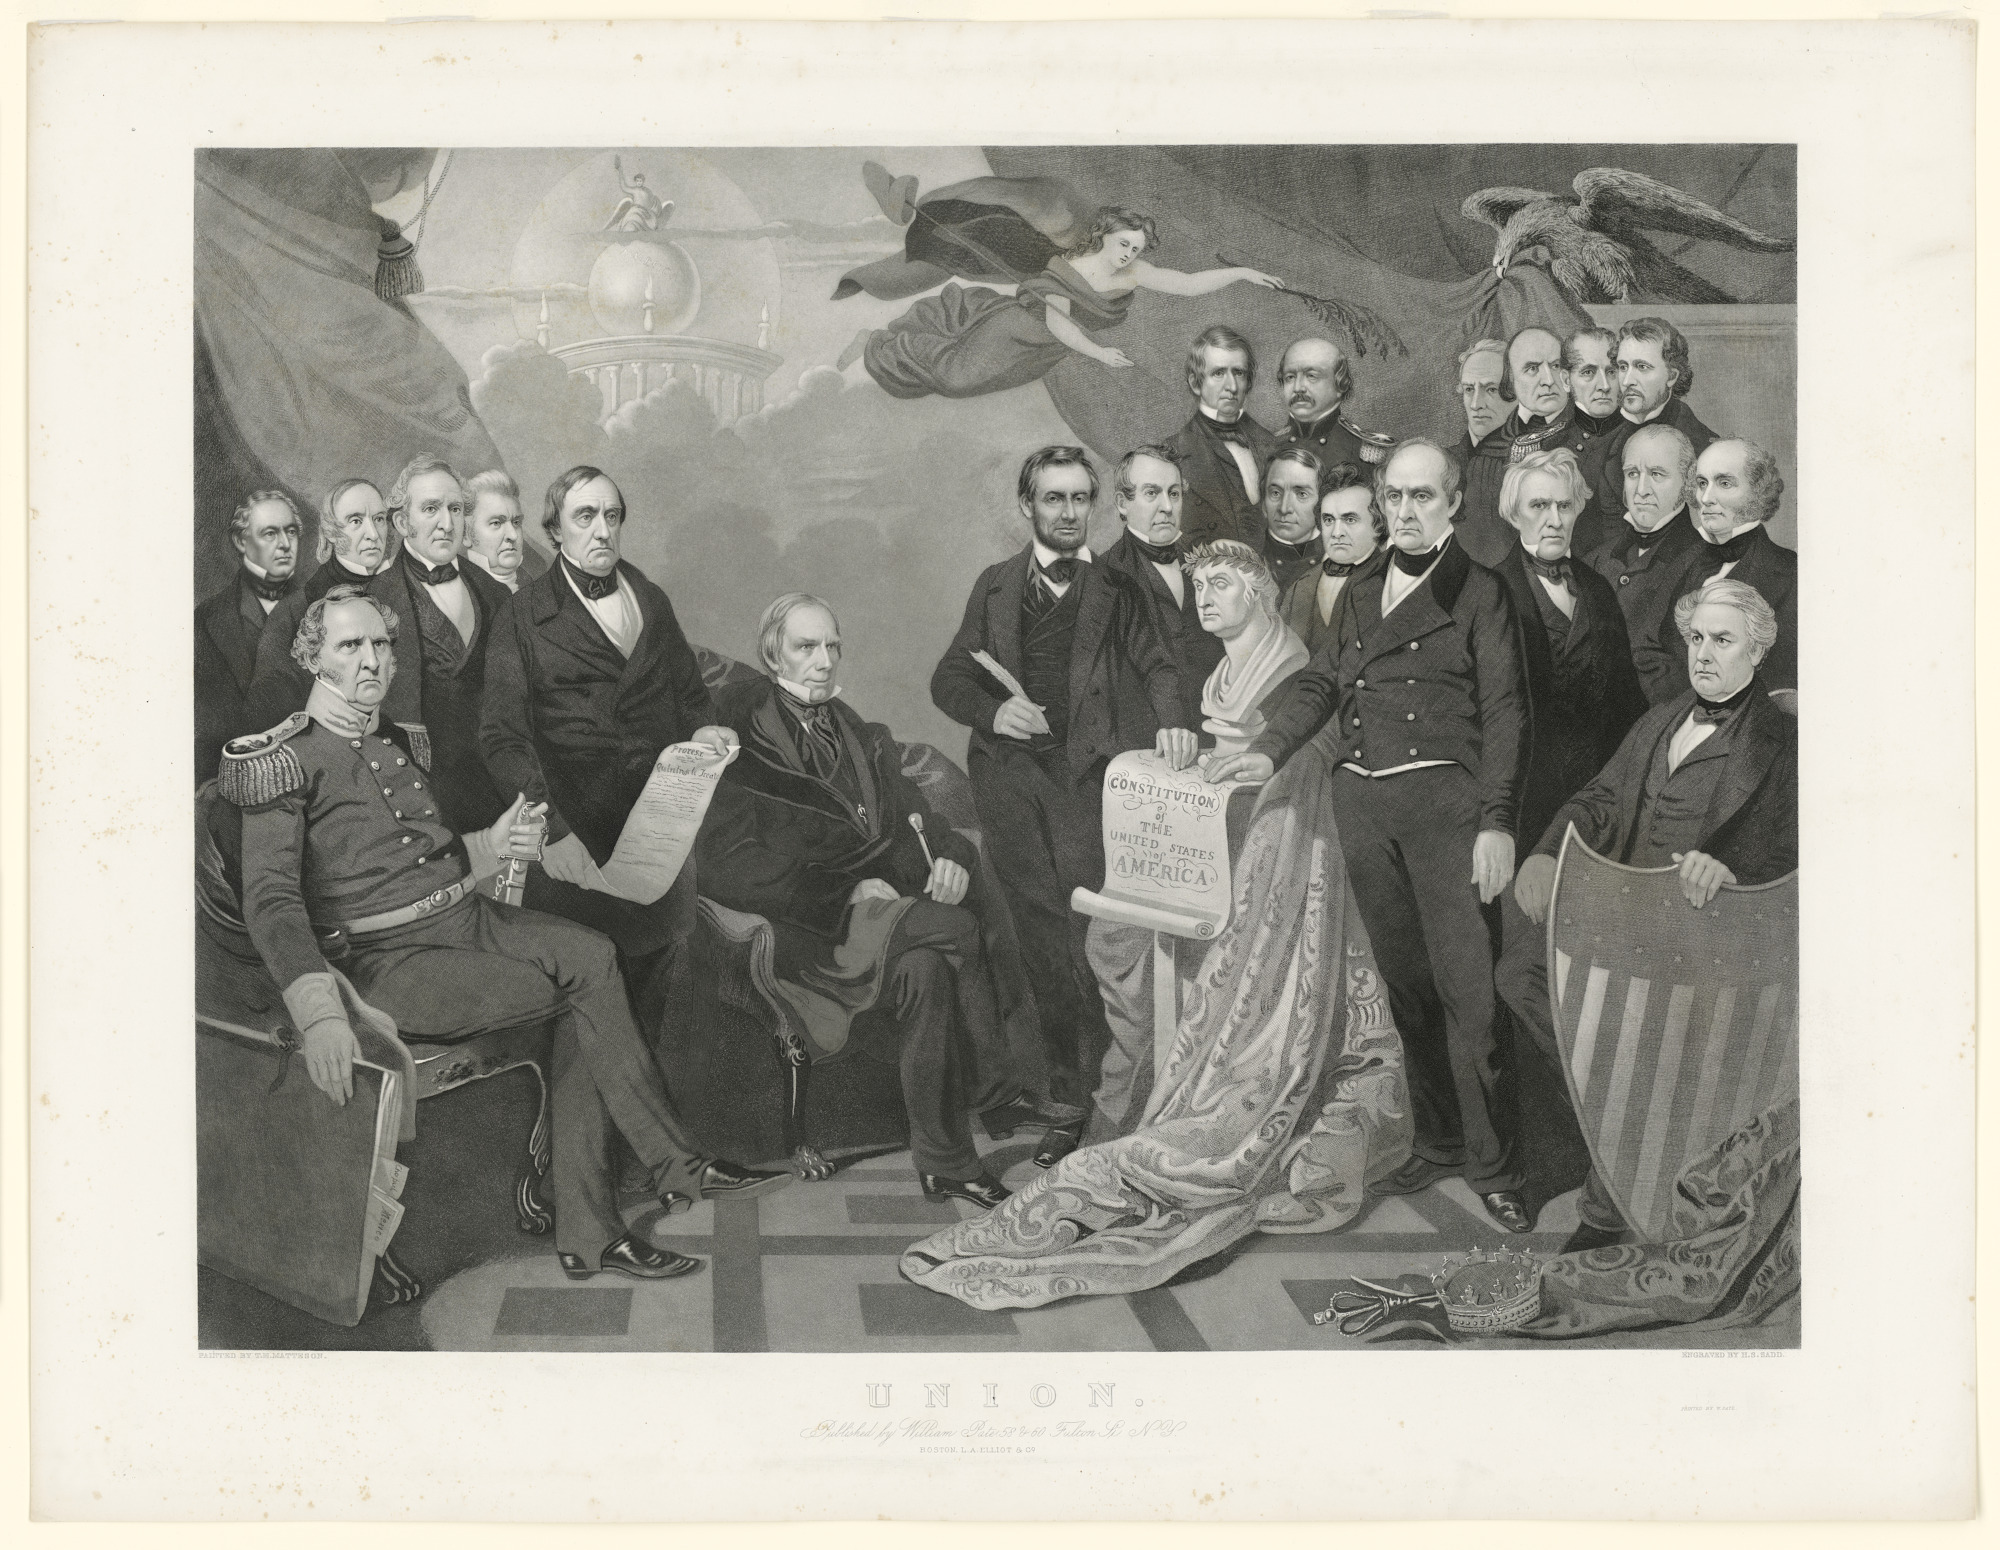 Lincoln with Major Union Figures